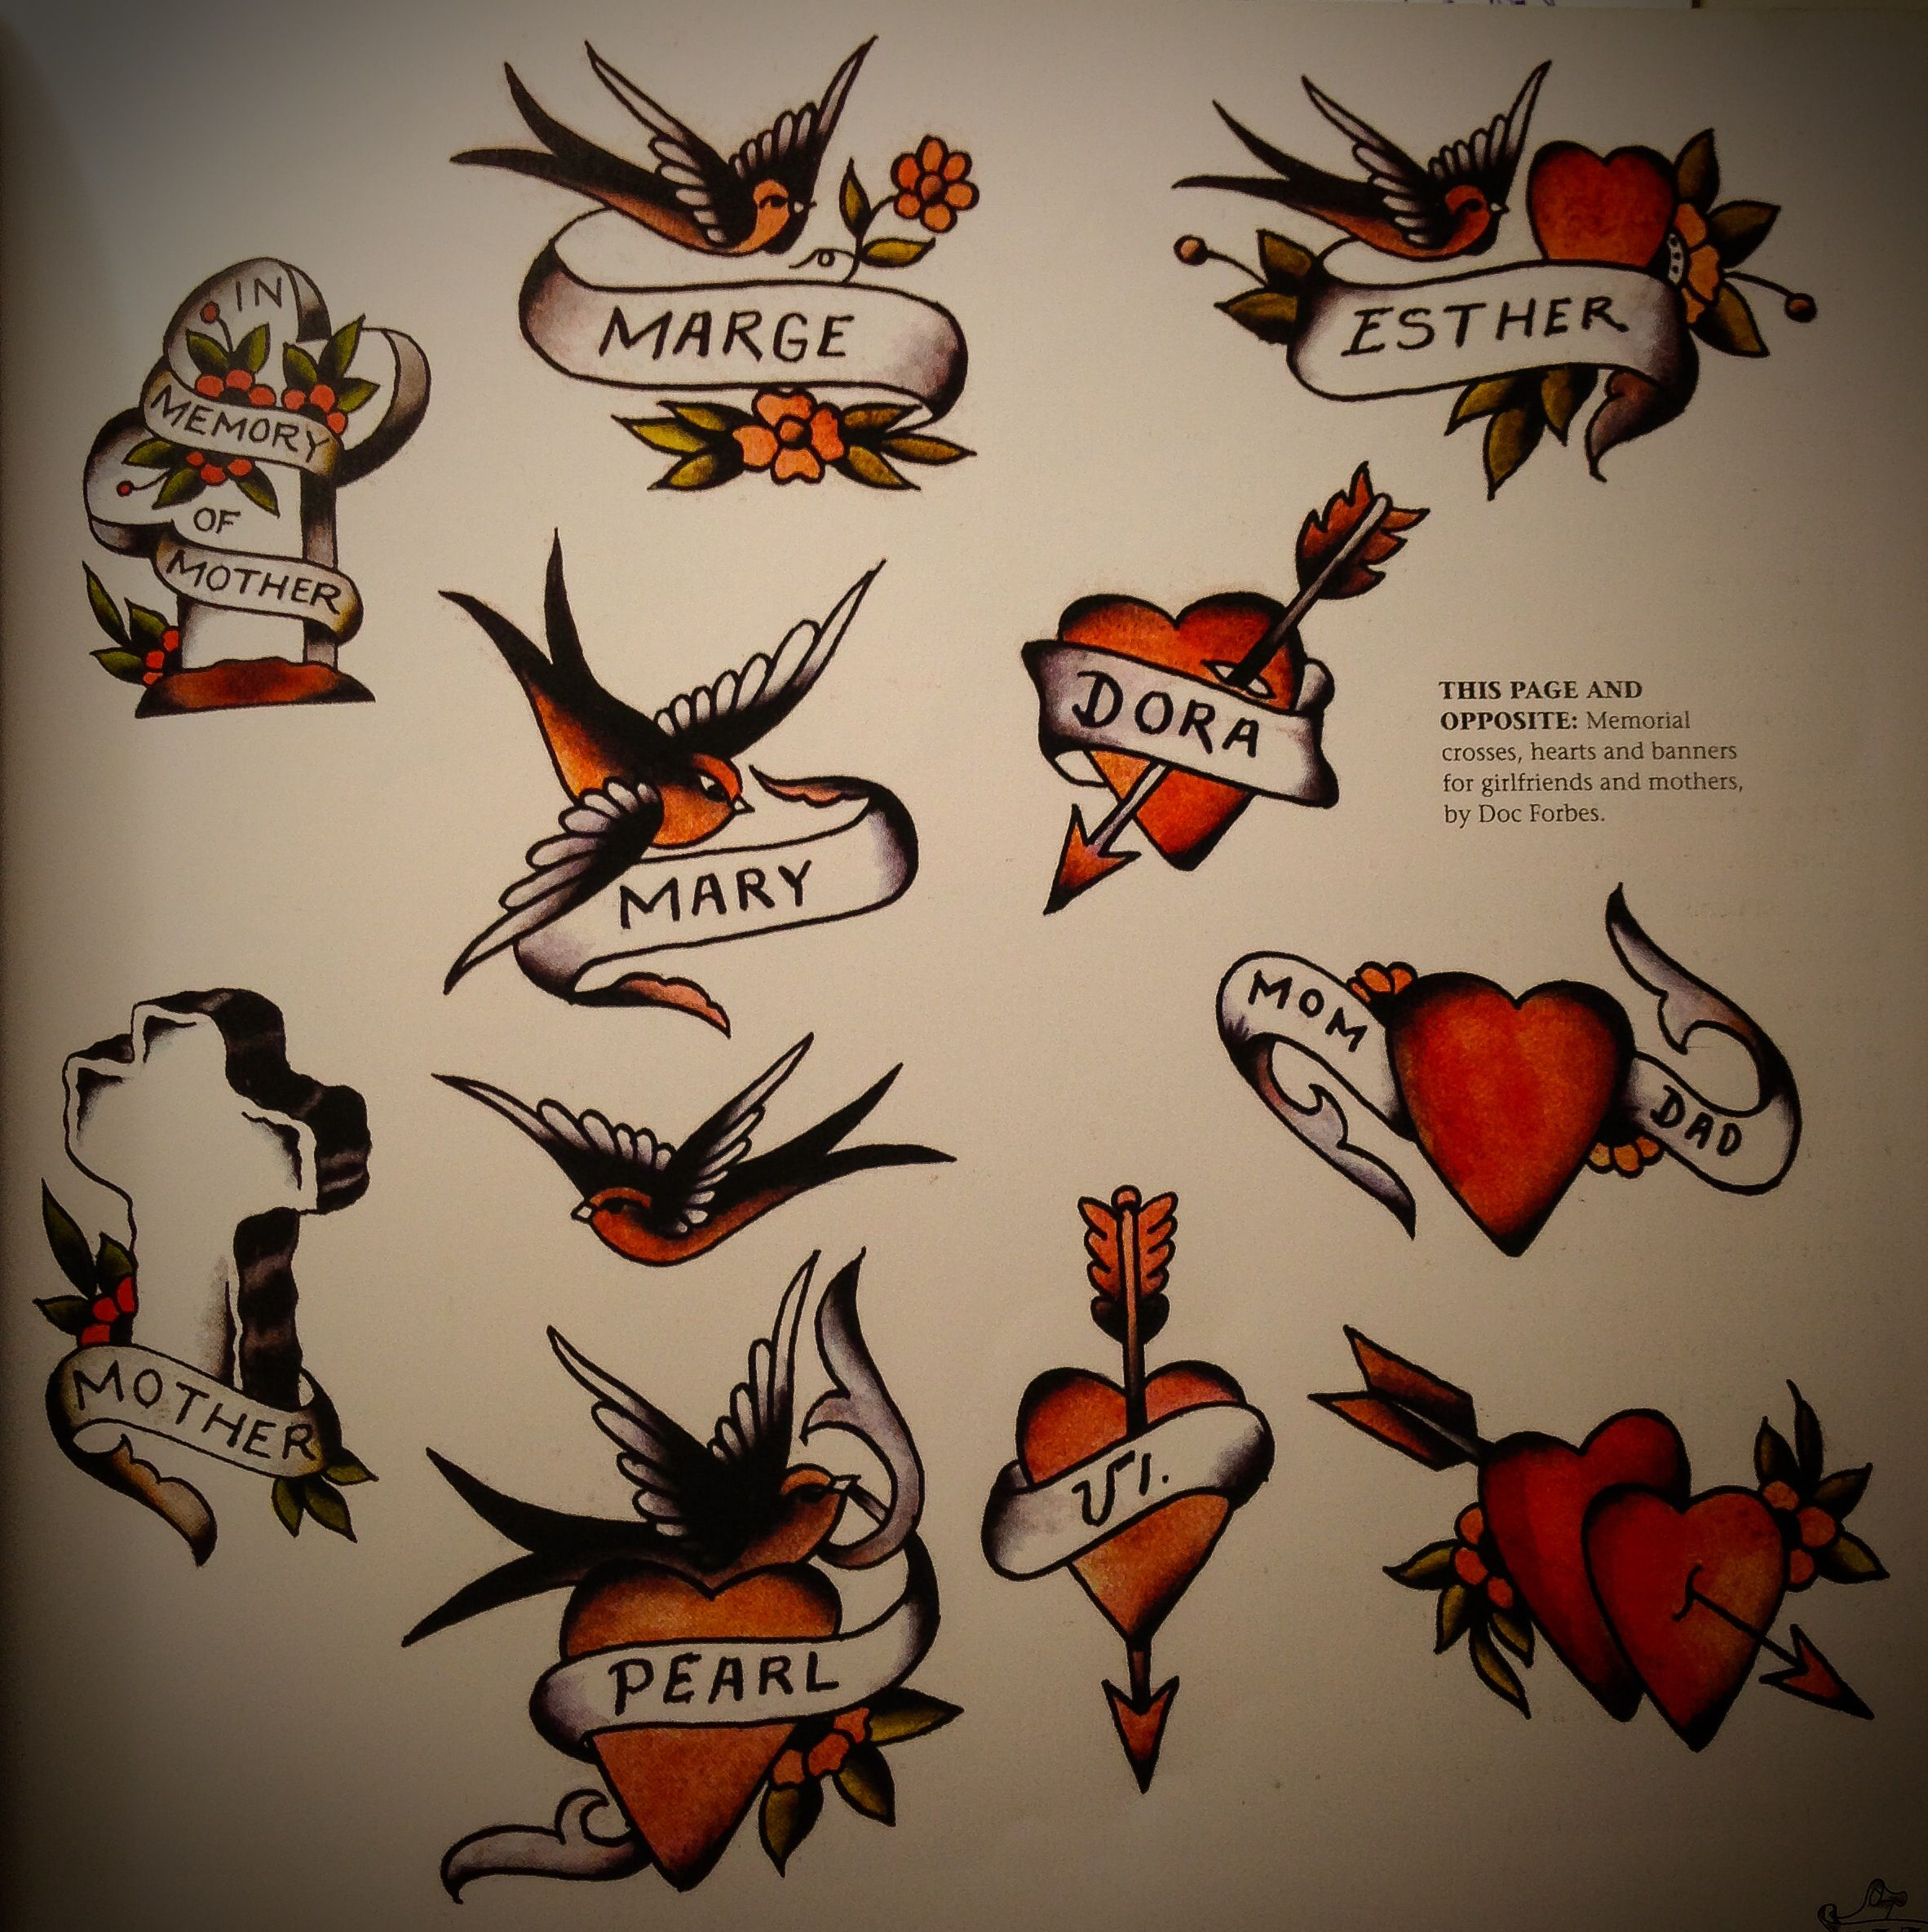 dcdbefd72 Doc Forbes. Bird Tattoo Meaning, Tattoos With Meaning, Swallow Bird Tattoos,  Left